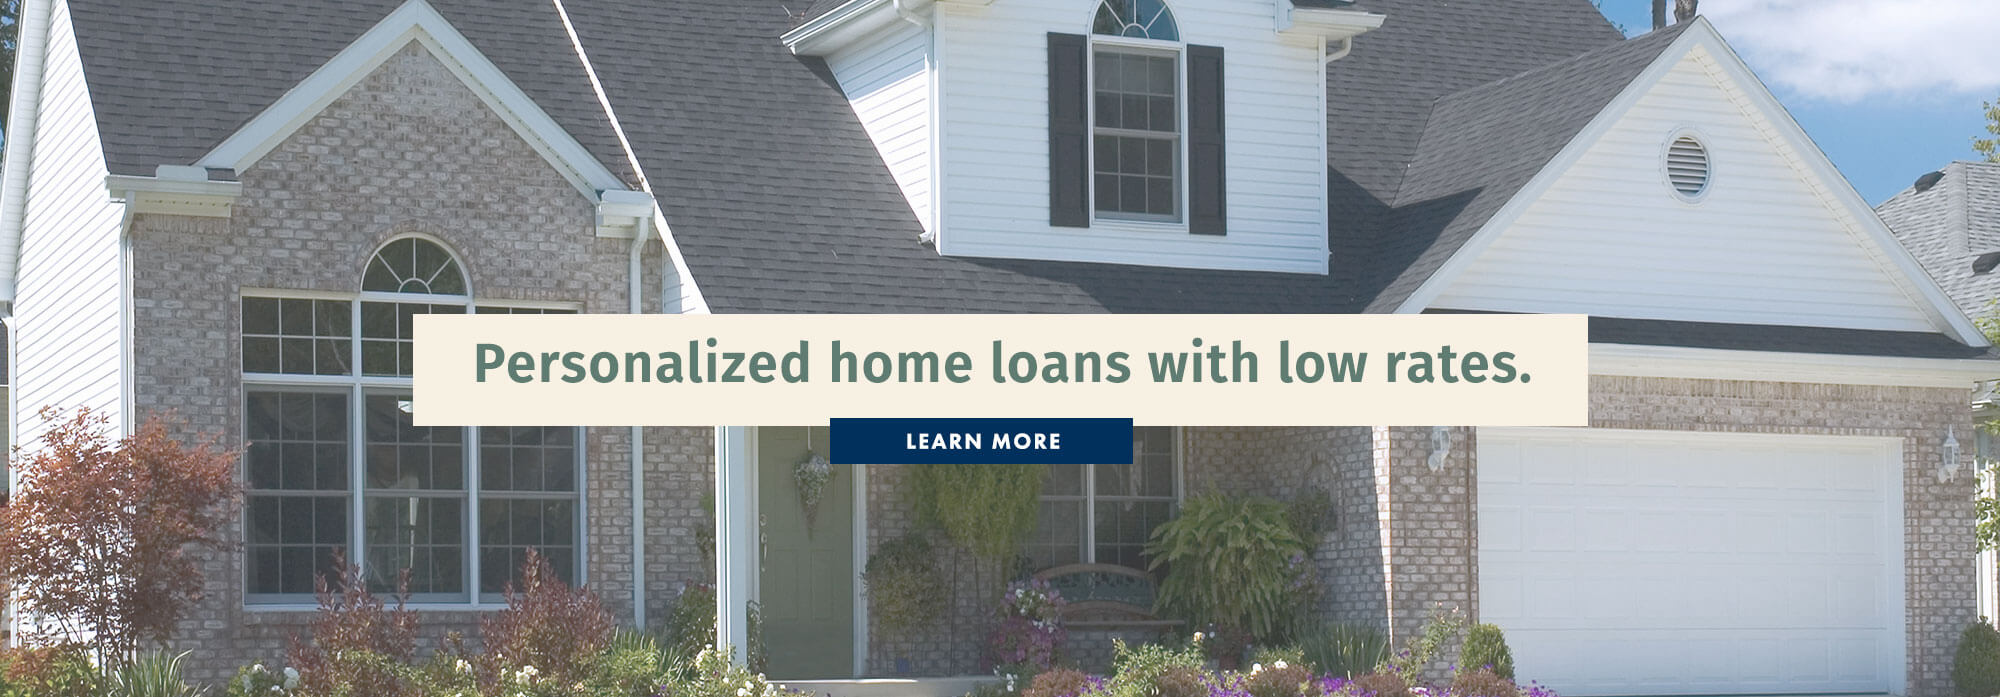 Personalized home loans with low rates